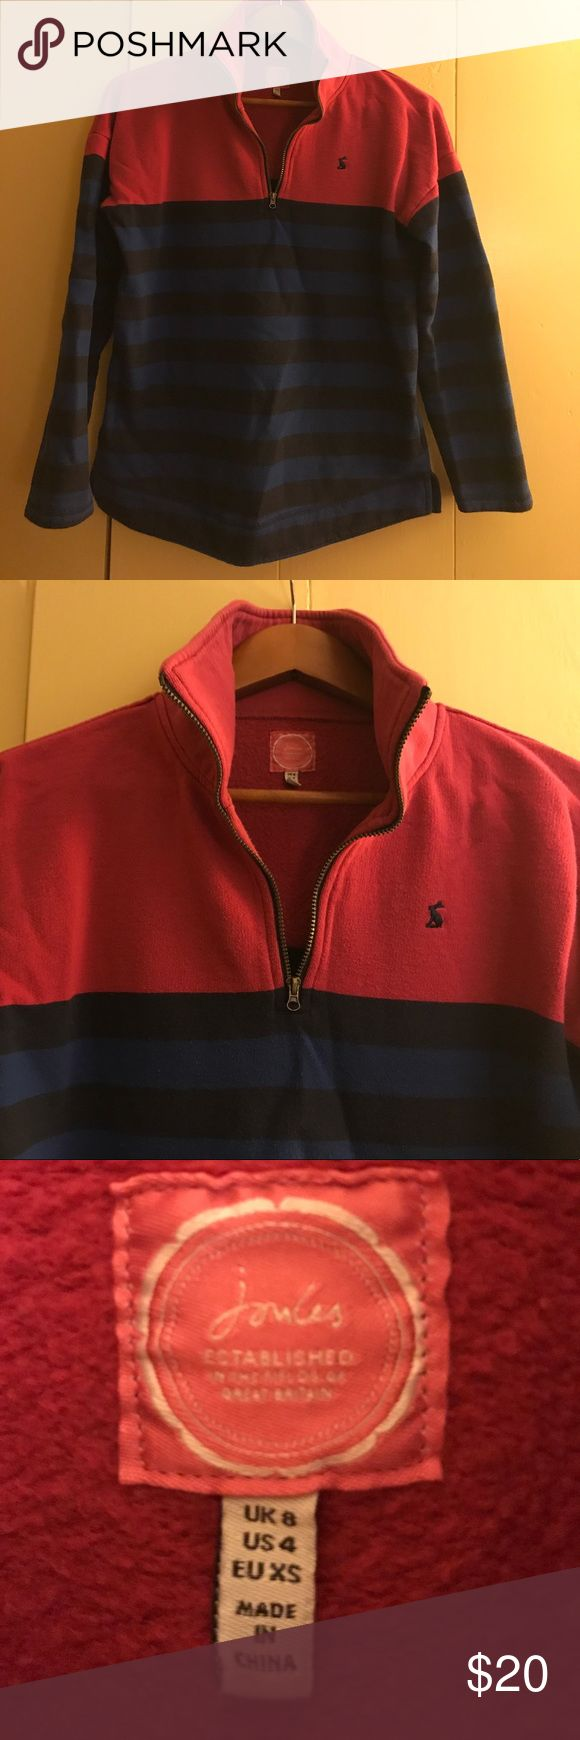 Joules quarter zip sweatshirt Lightly worn Joules rugby-style sweatshirt. Purchased in England. Classic, preppy! In great condition from non-smoking home. Very cozy and high quality! Runs a little large, more like a small. Joules Tops Sweatshirts & Hoodies